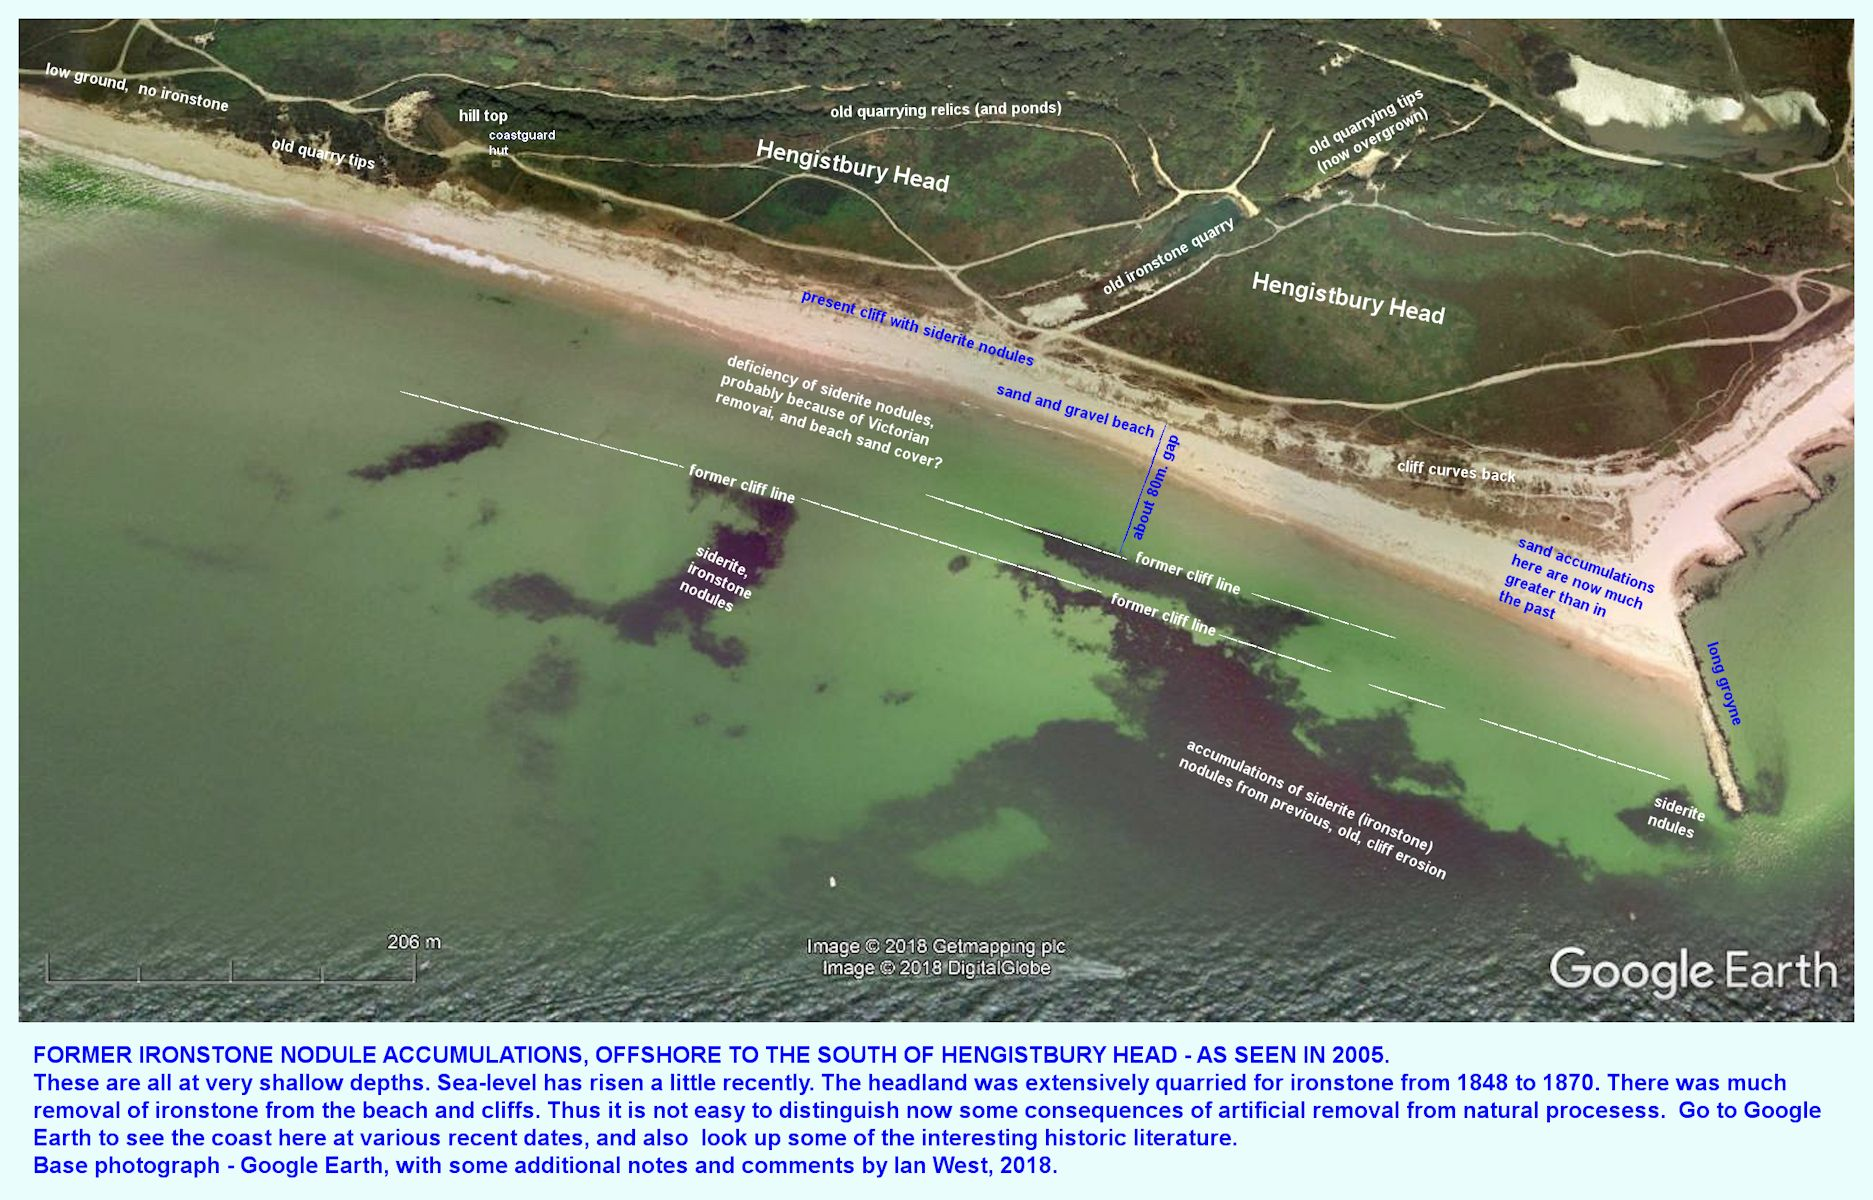 Aerial view, GE, of reworked ironstone nodules on the shallow sea-floor, south of Hengistbury Head, 2005, with descriptive notes added by IMW in 2018